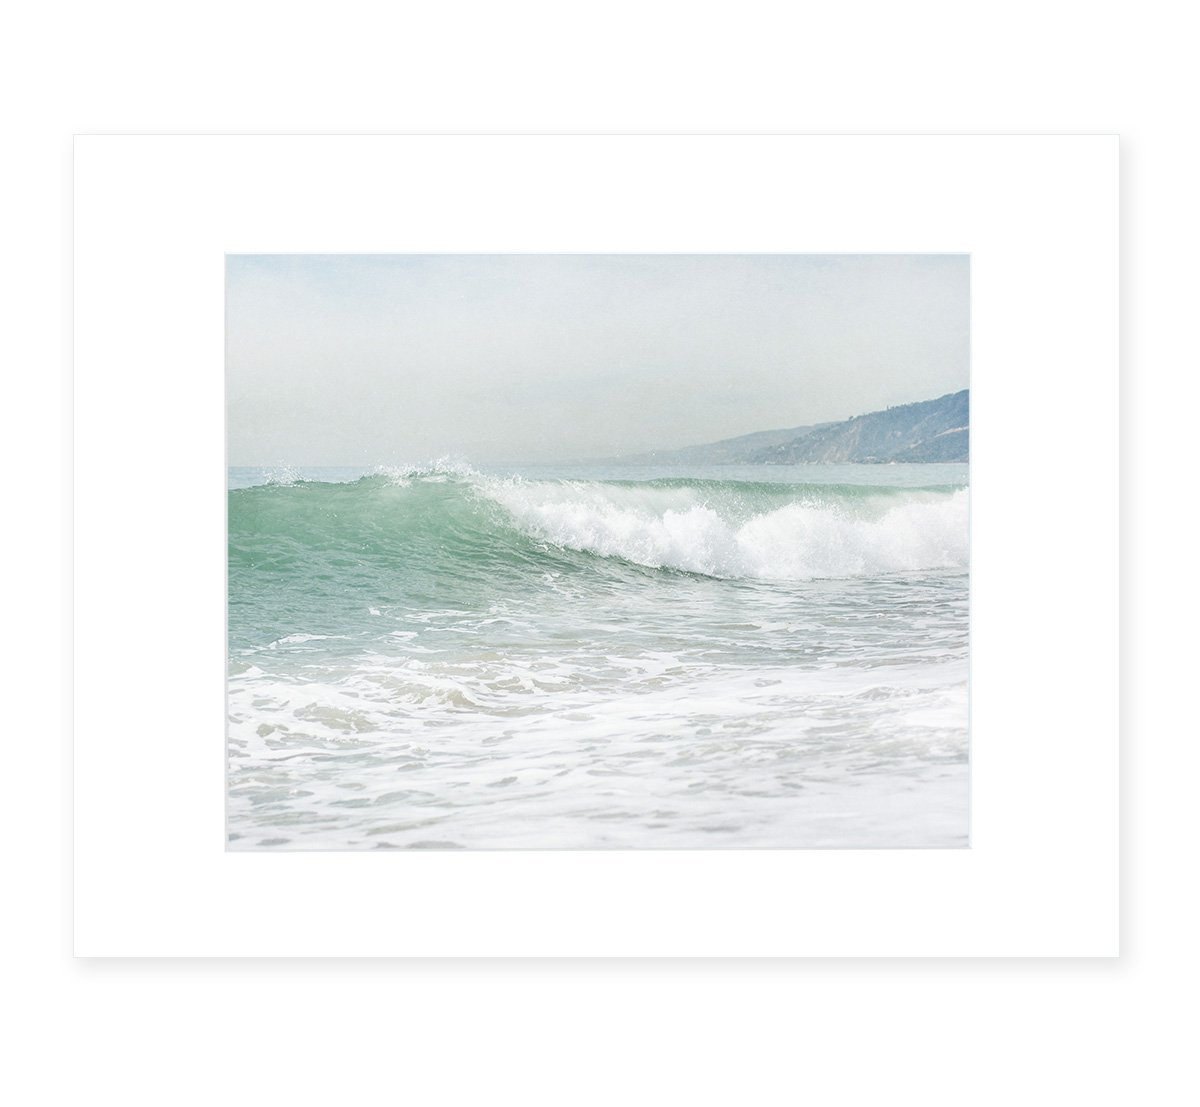 Coastal Ocean Waves Wall Art, California Beach Decor, Malibu Pacific Palisades Landscape Picture, 8x10 Matted Photographic Print (fits 11x14 frame), 'Breaking Surf'